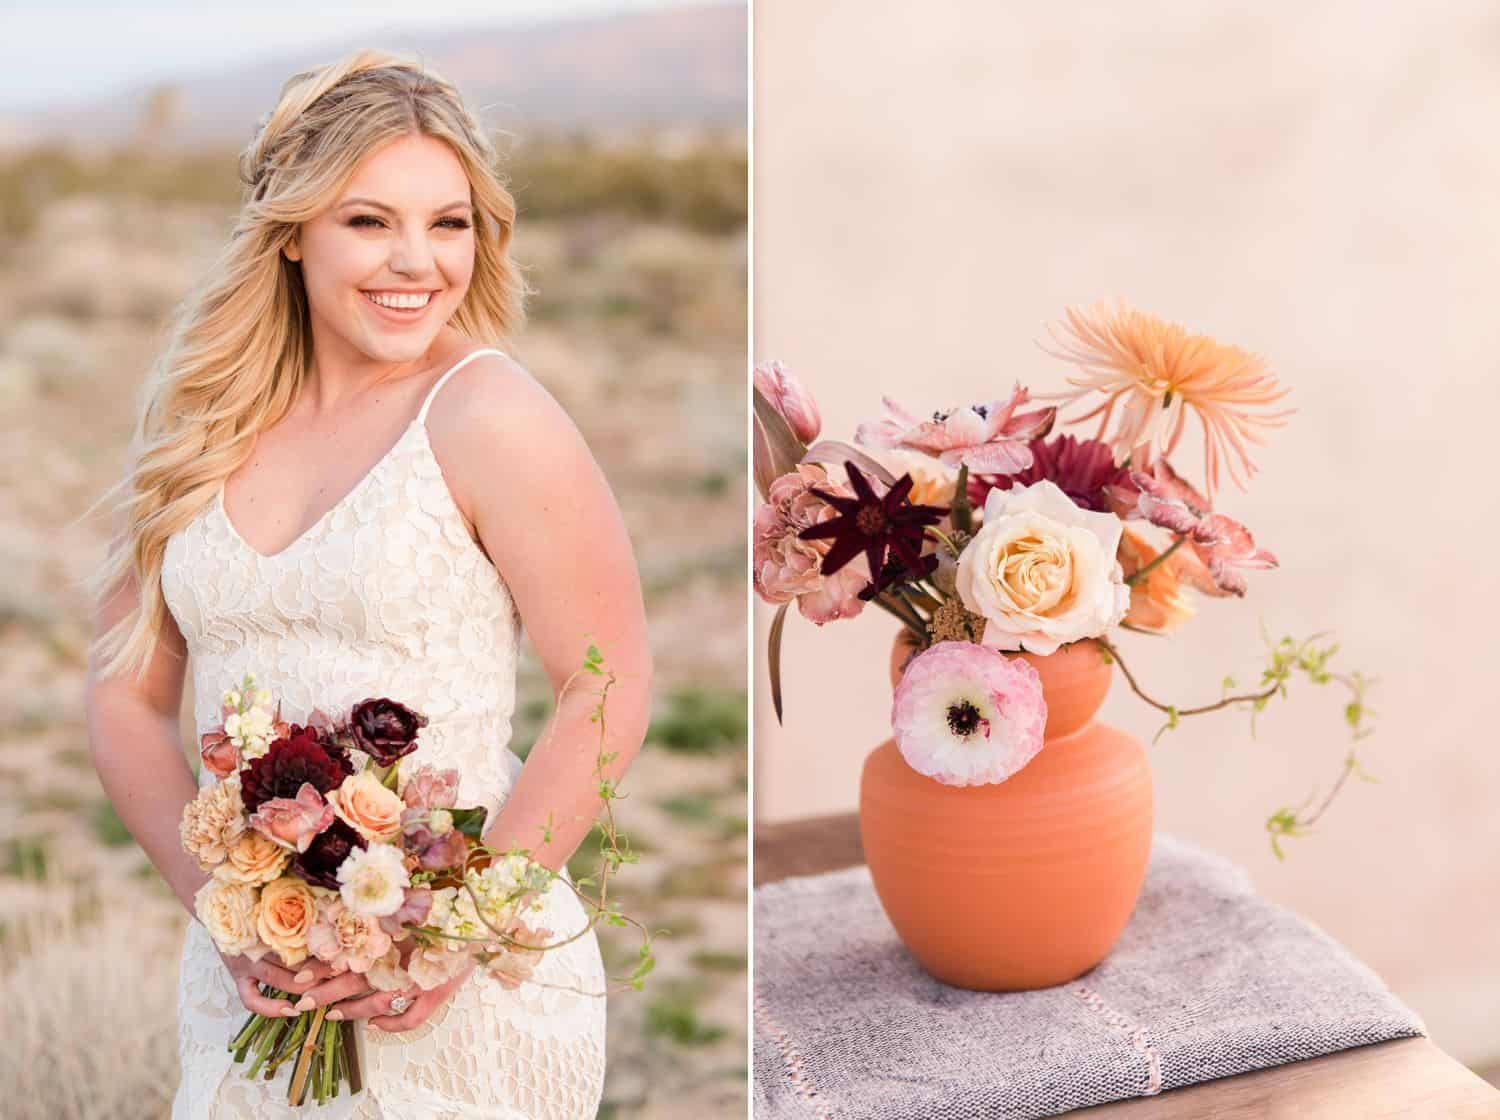 Tips for an Easy, Affordable Styled Shoot